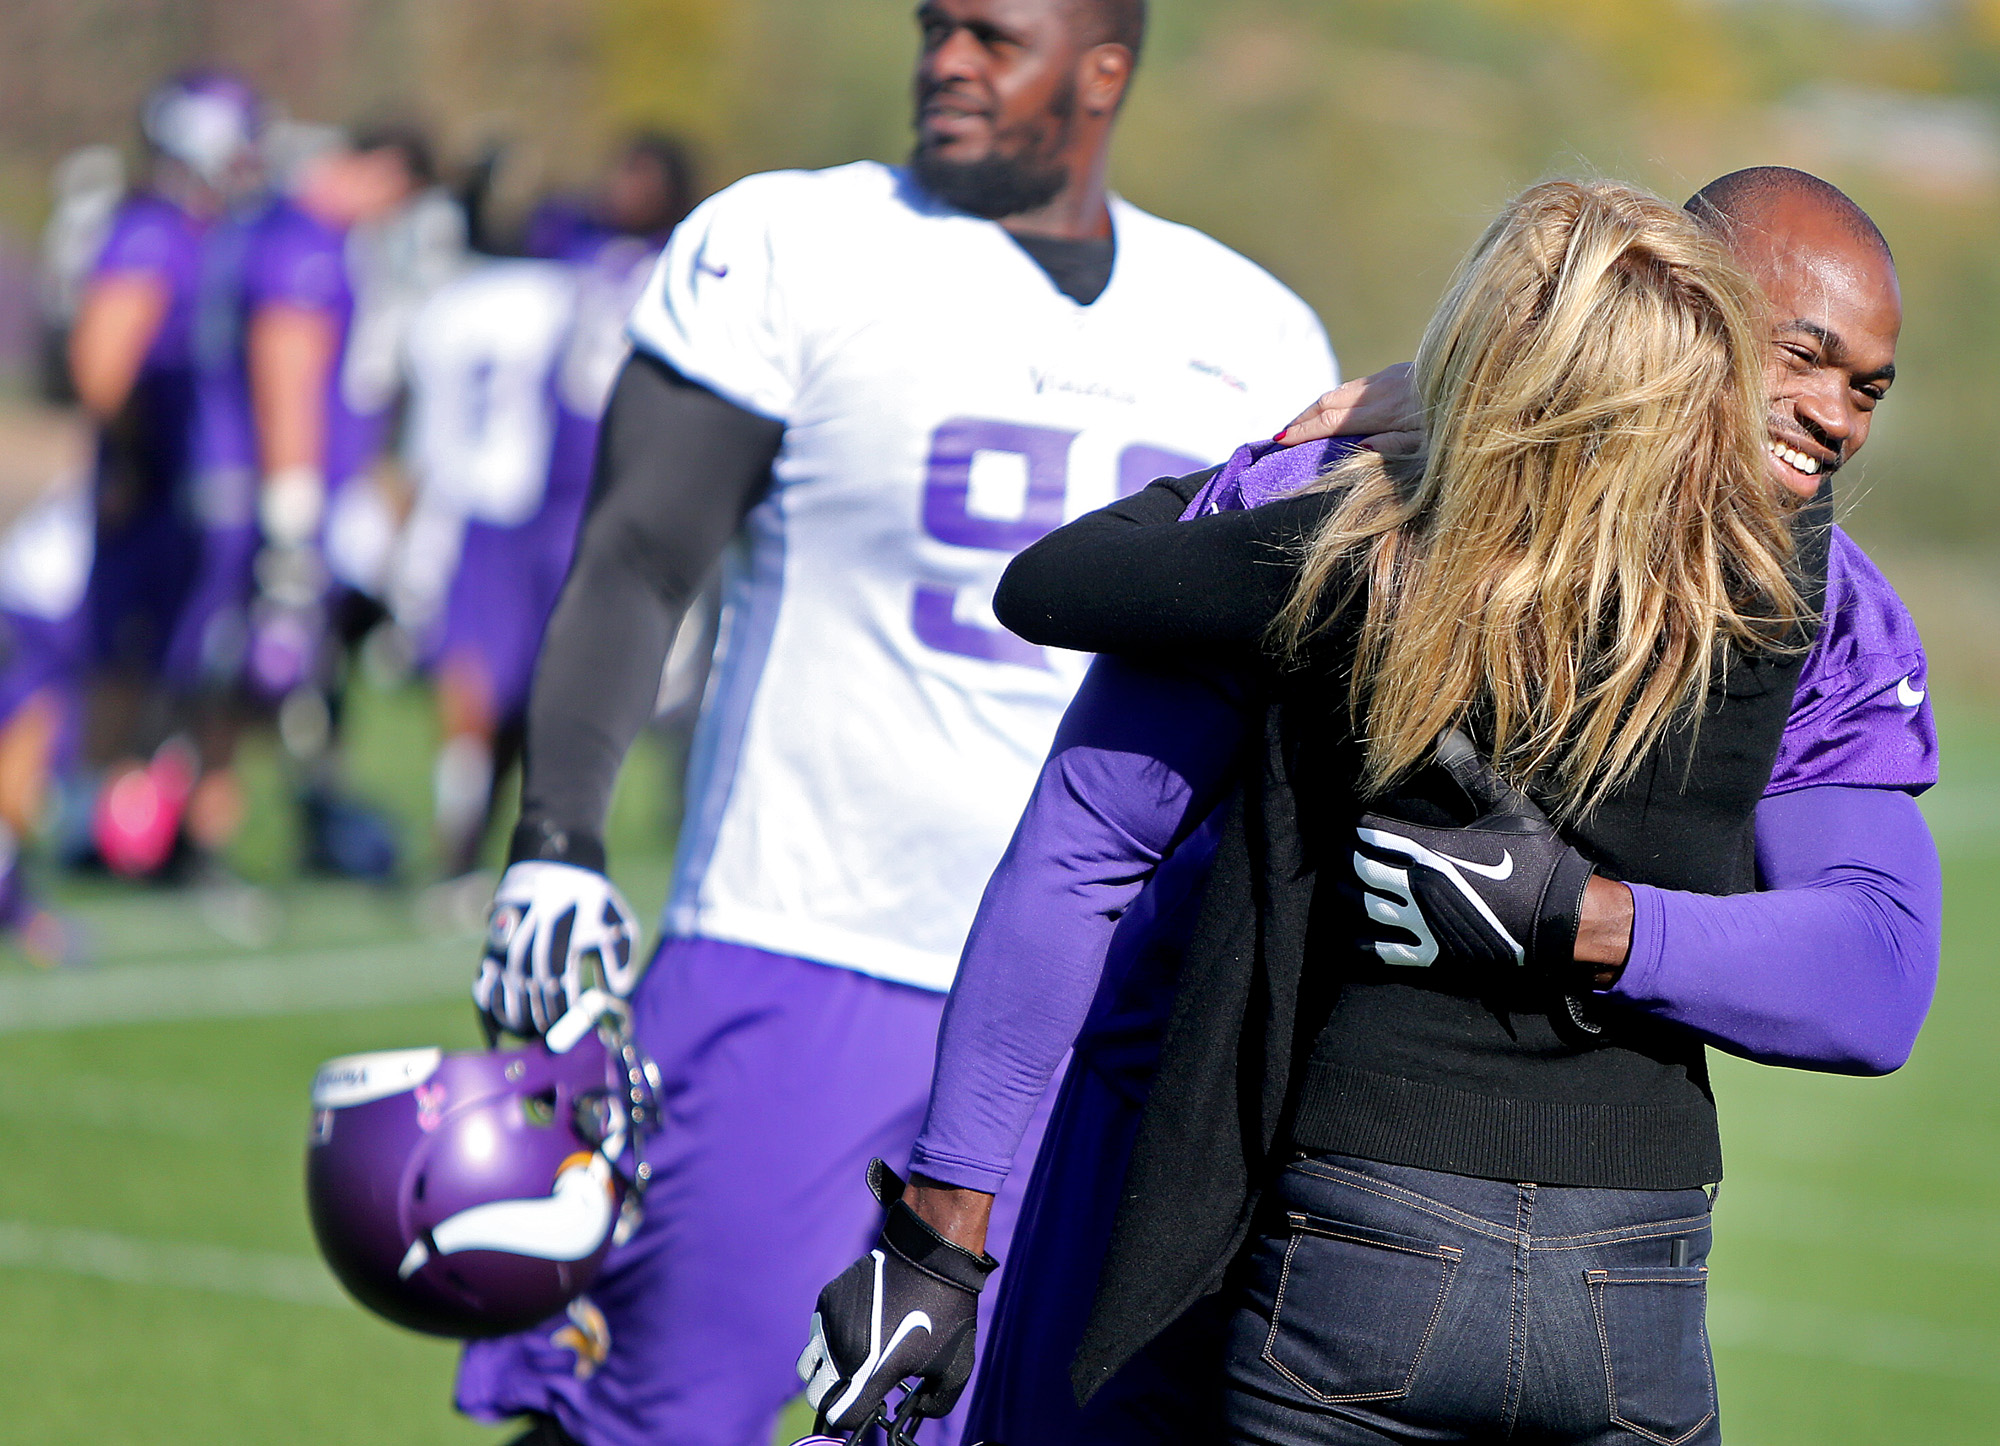 Adrian Peterson's son, 2, dies after alleged assault - The Boston ...